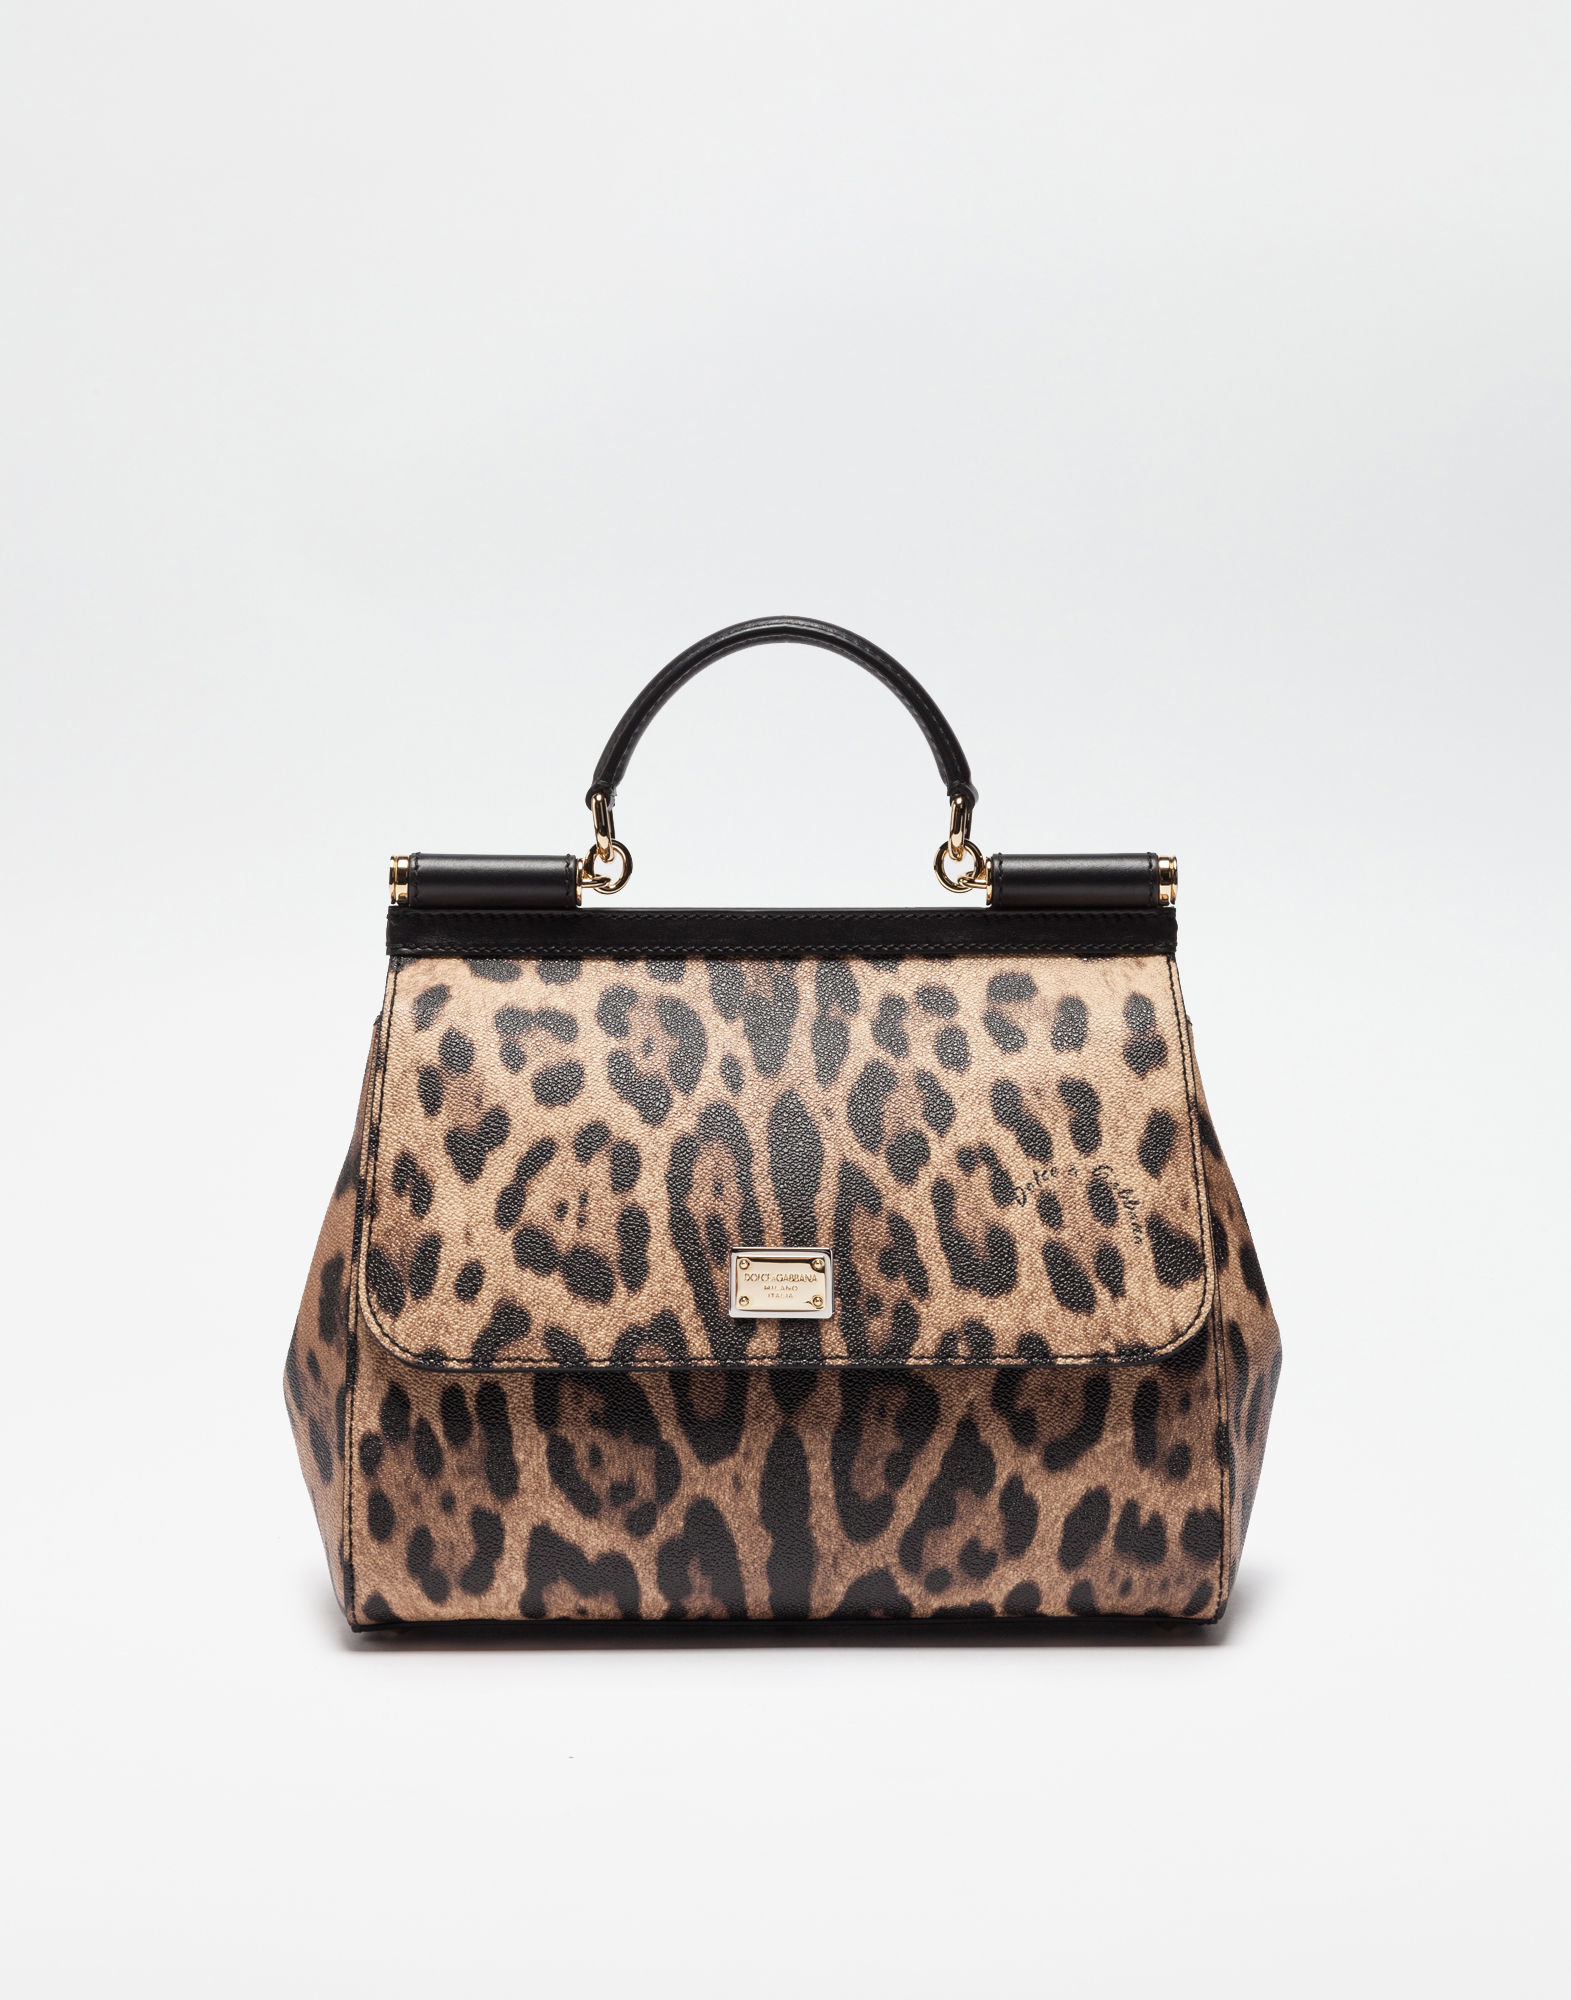 b38683357d Dolce & Gabbana Woman Sicily Leopard-Print Textured-Leather Shoulder ...